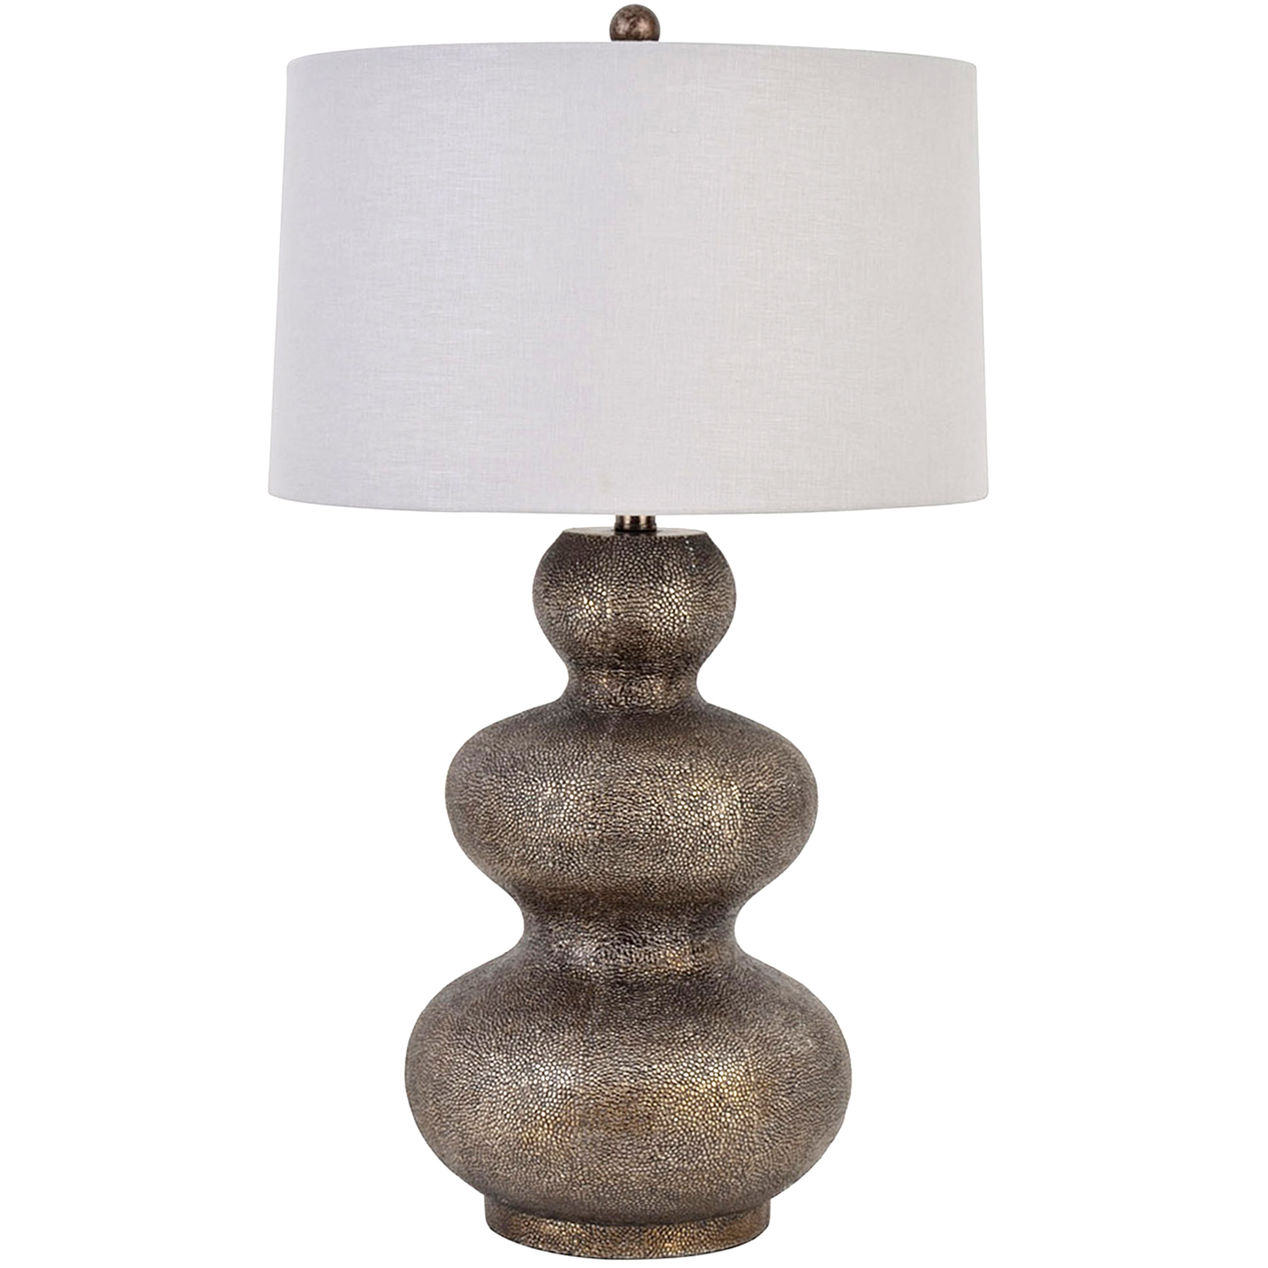 tier bronze ball table lamp shade sold separately home nautical accent lamps zoom dale tiffany dragonfly vintage retro dining and chairs sofa ping drum throne seat ikea console